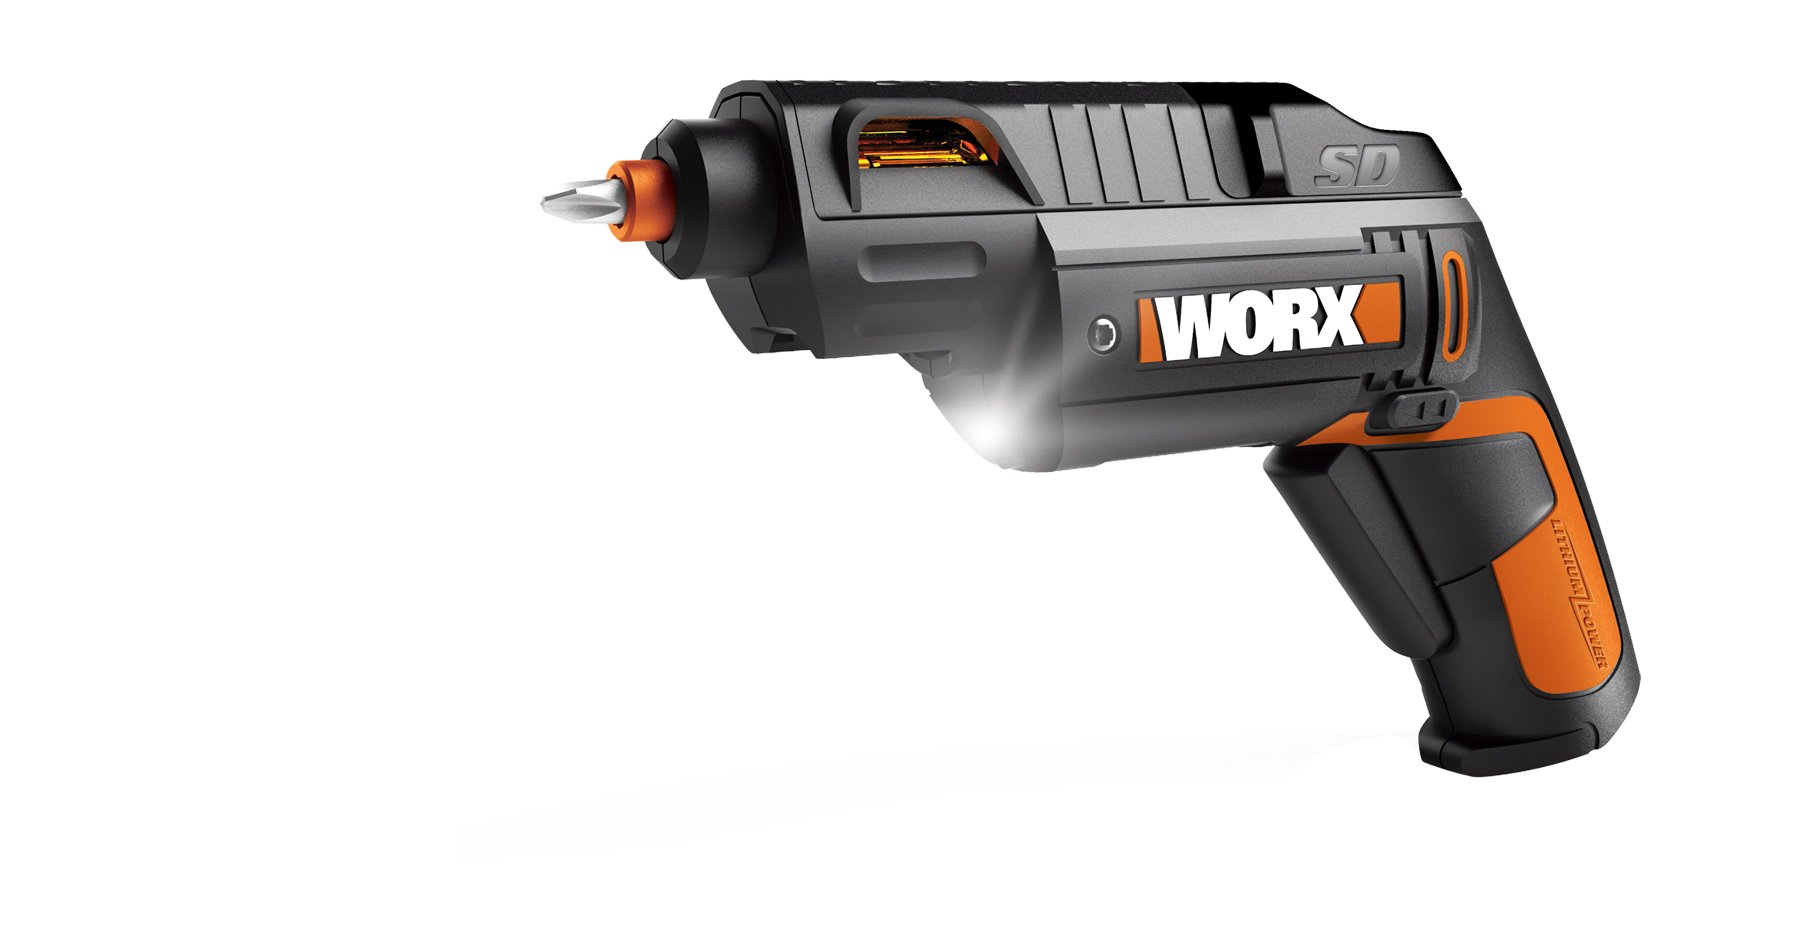 WORX WX254L SD Semi-Automatic Power Screw Driver with 12 Driving Bits by WORX